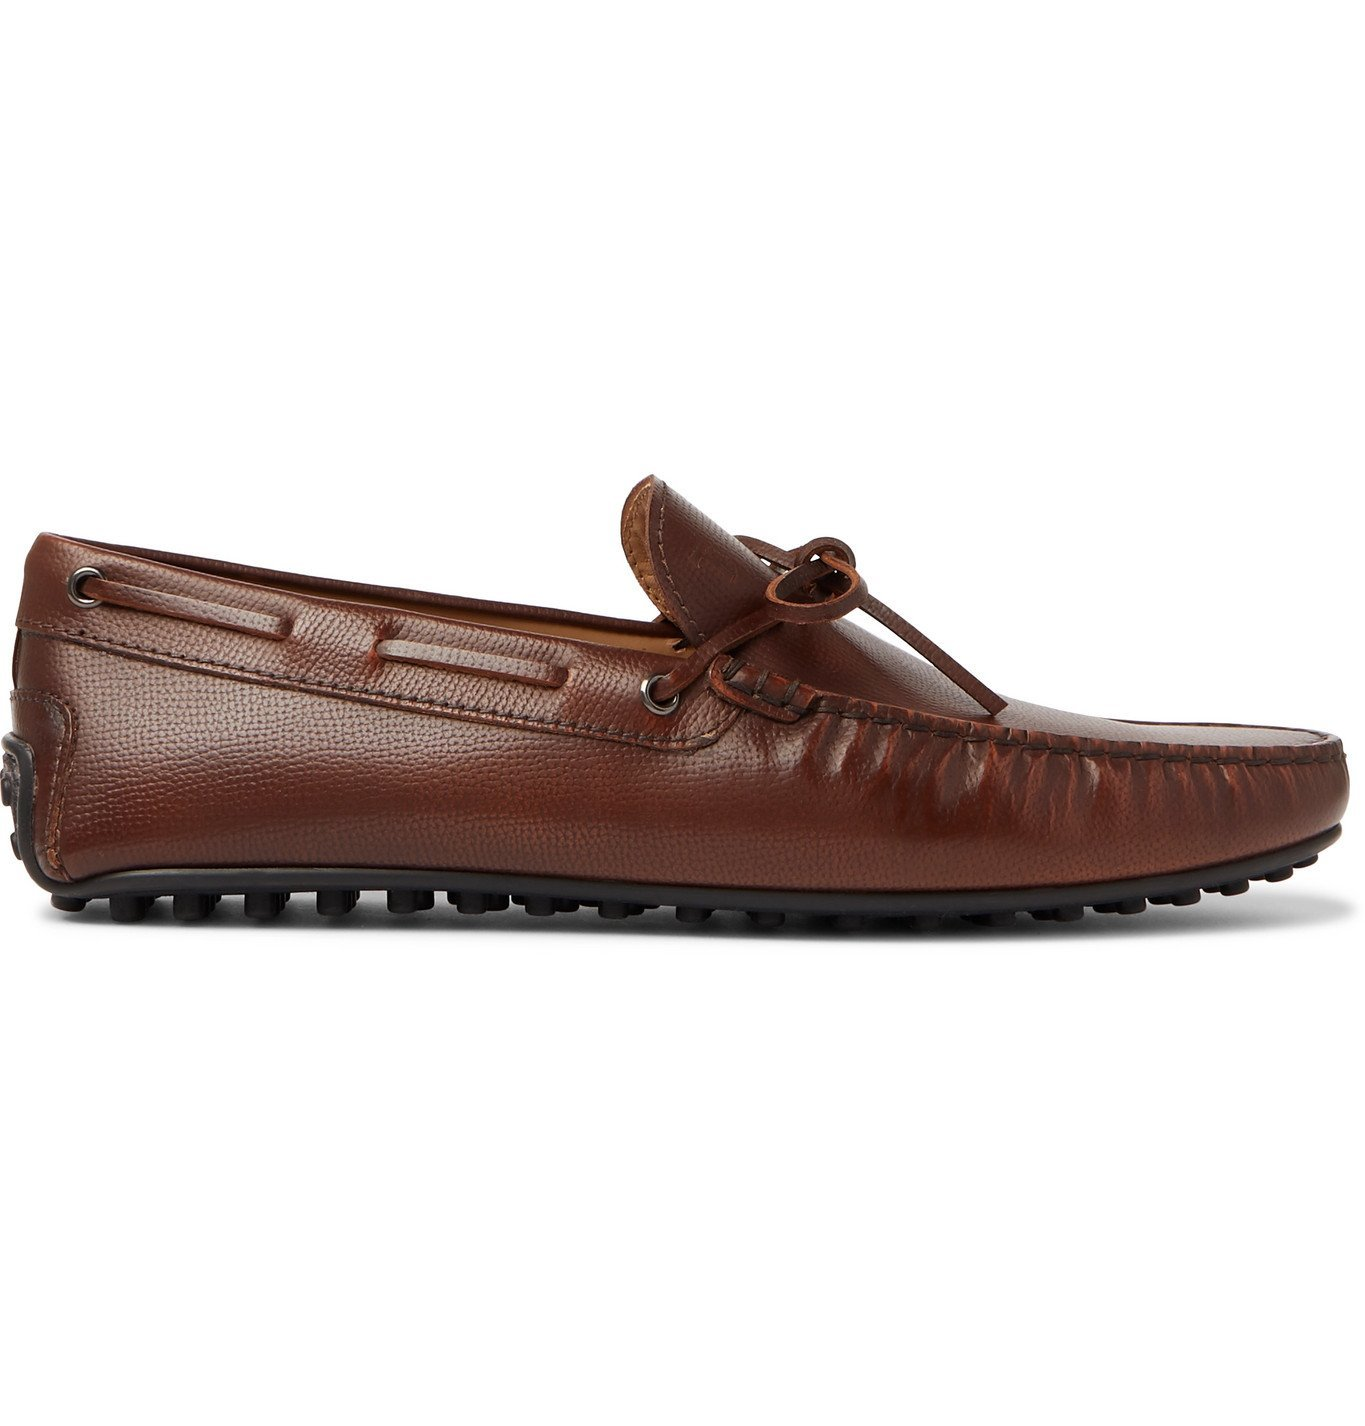 Tod's - City Full-Grain Leather Driving Shoes - Brown